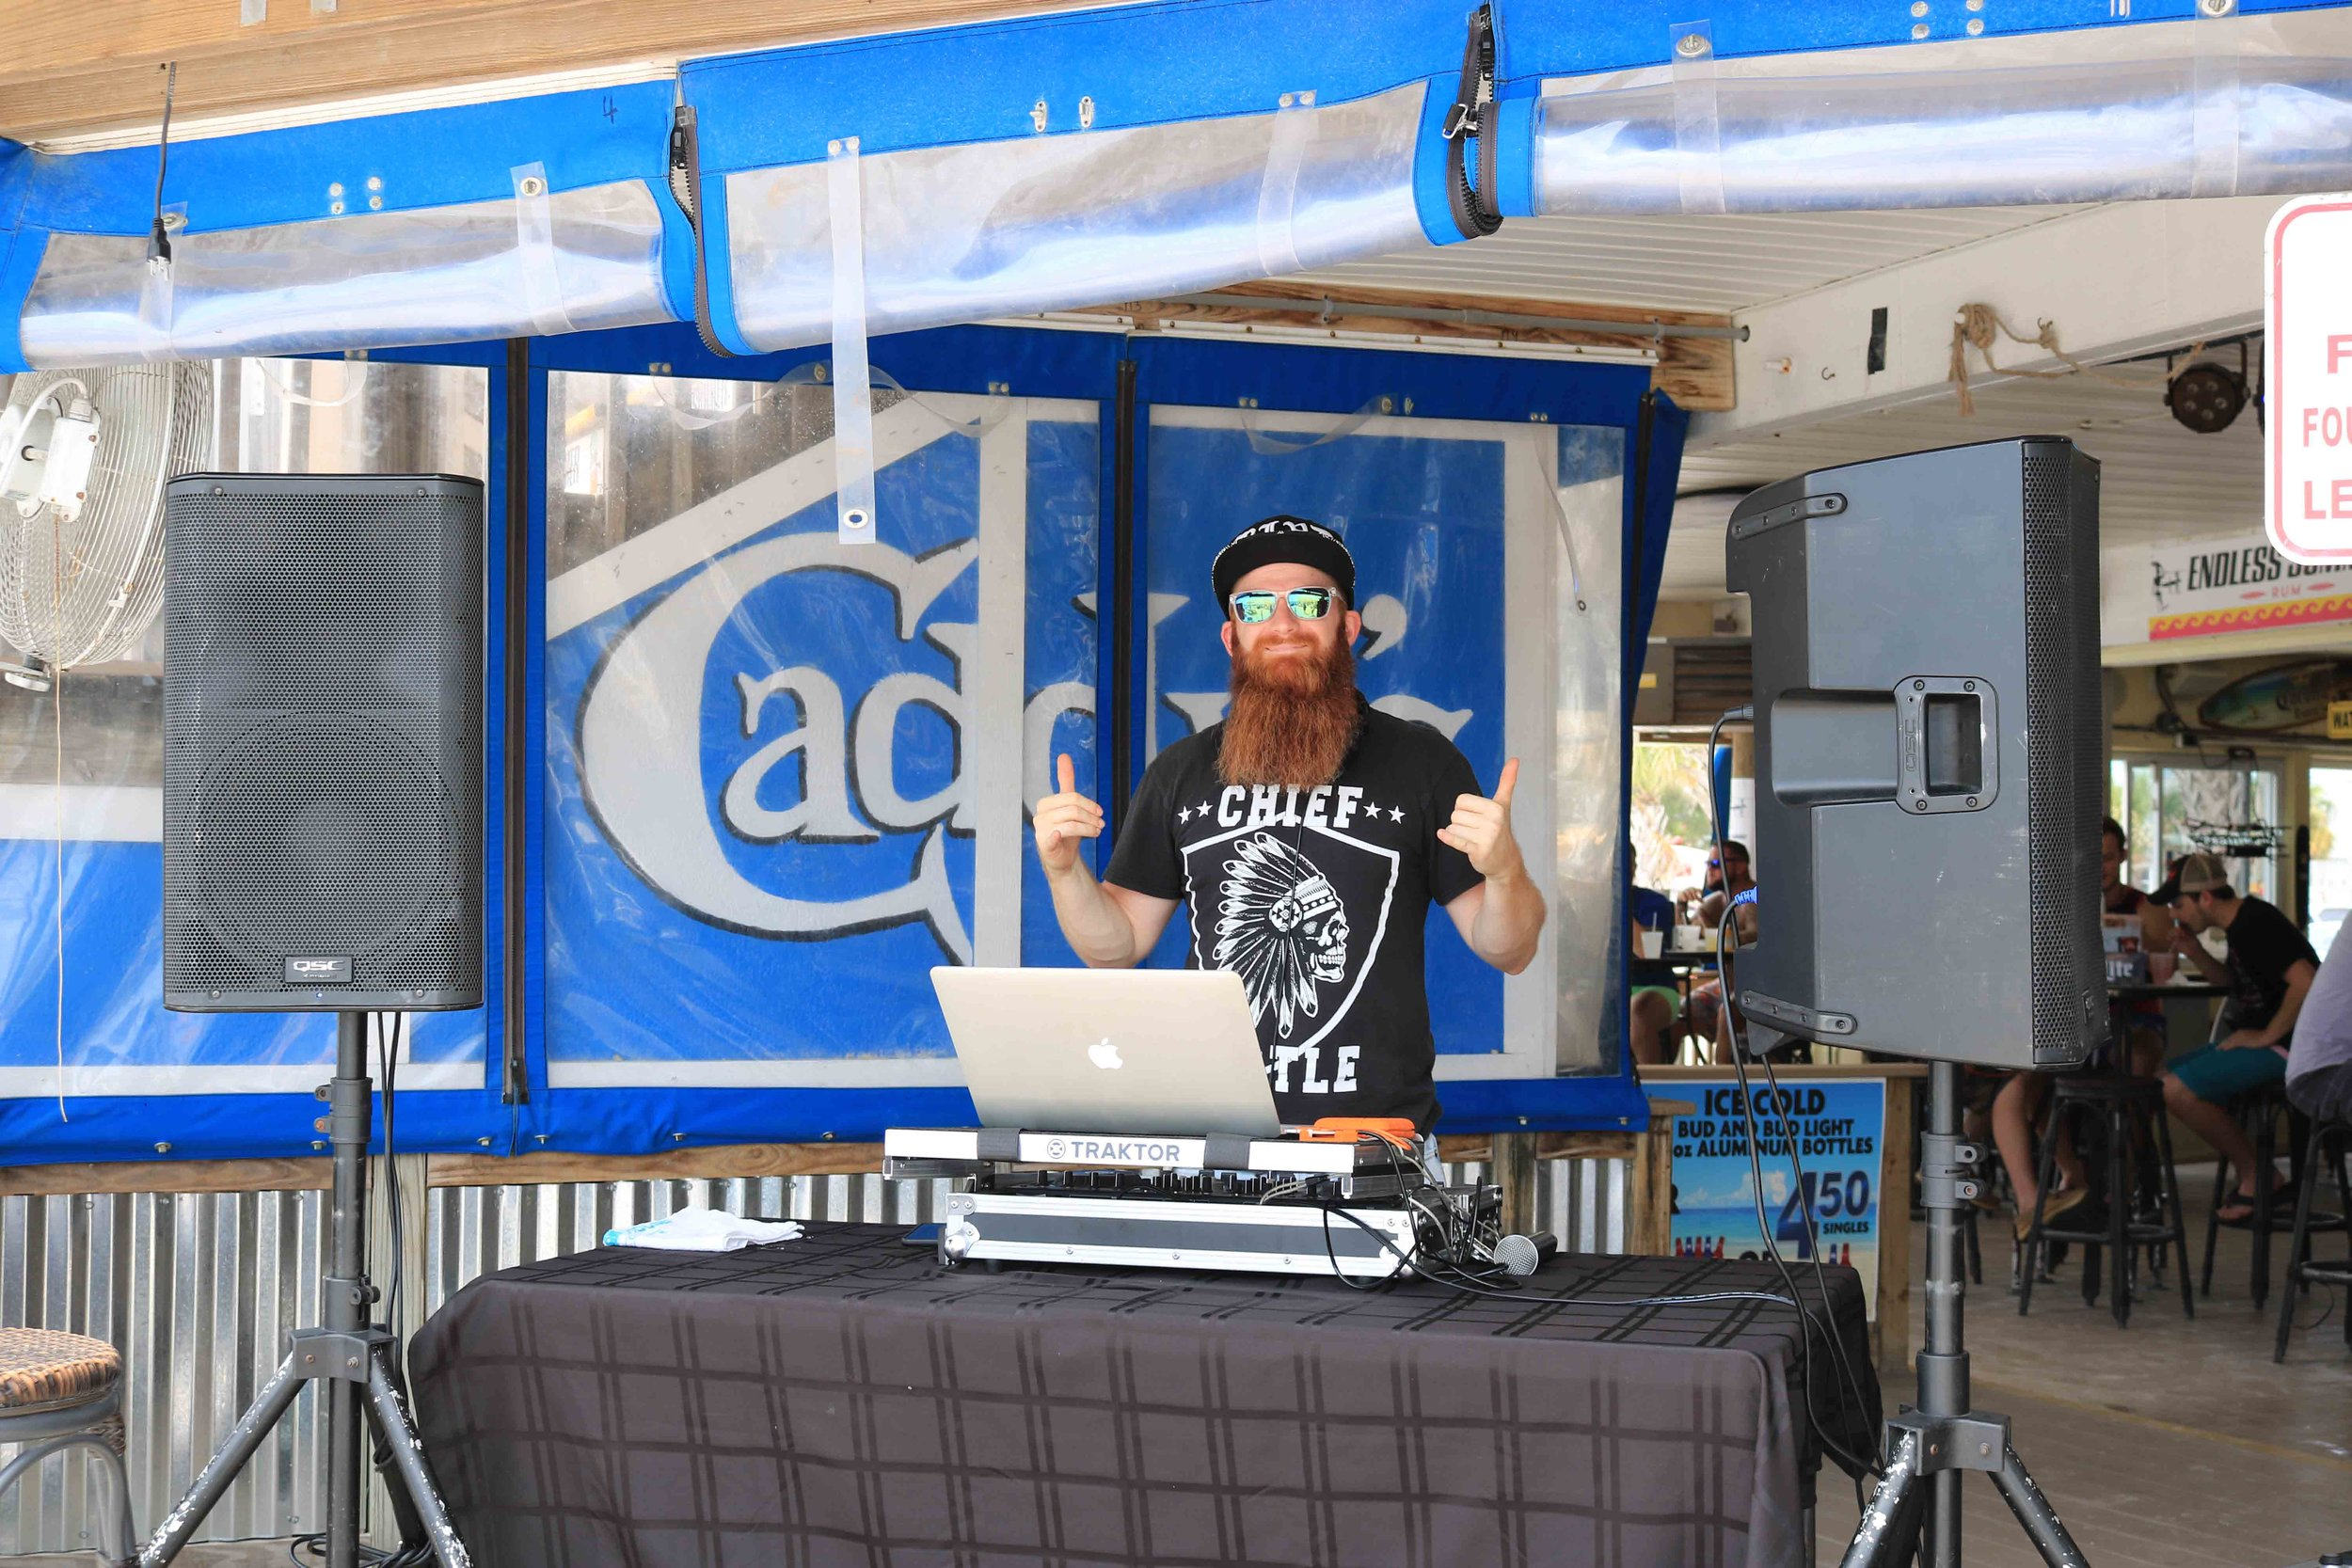 Cutty Jones kept the party going with a great mix of music